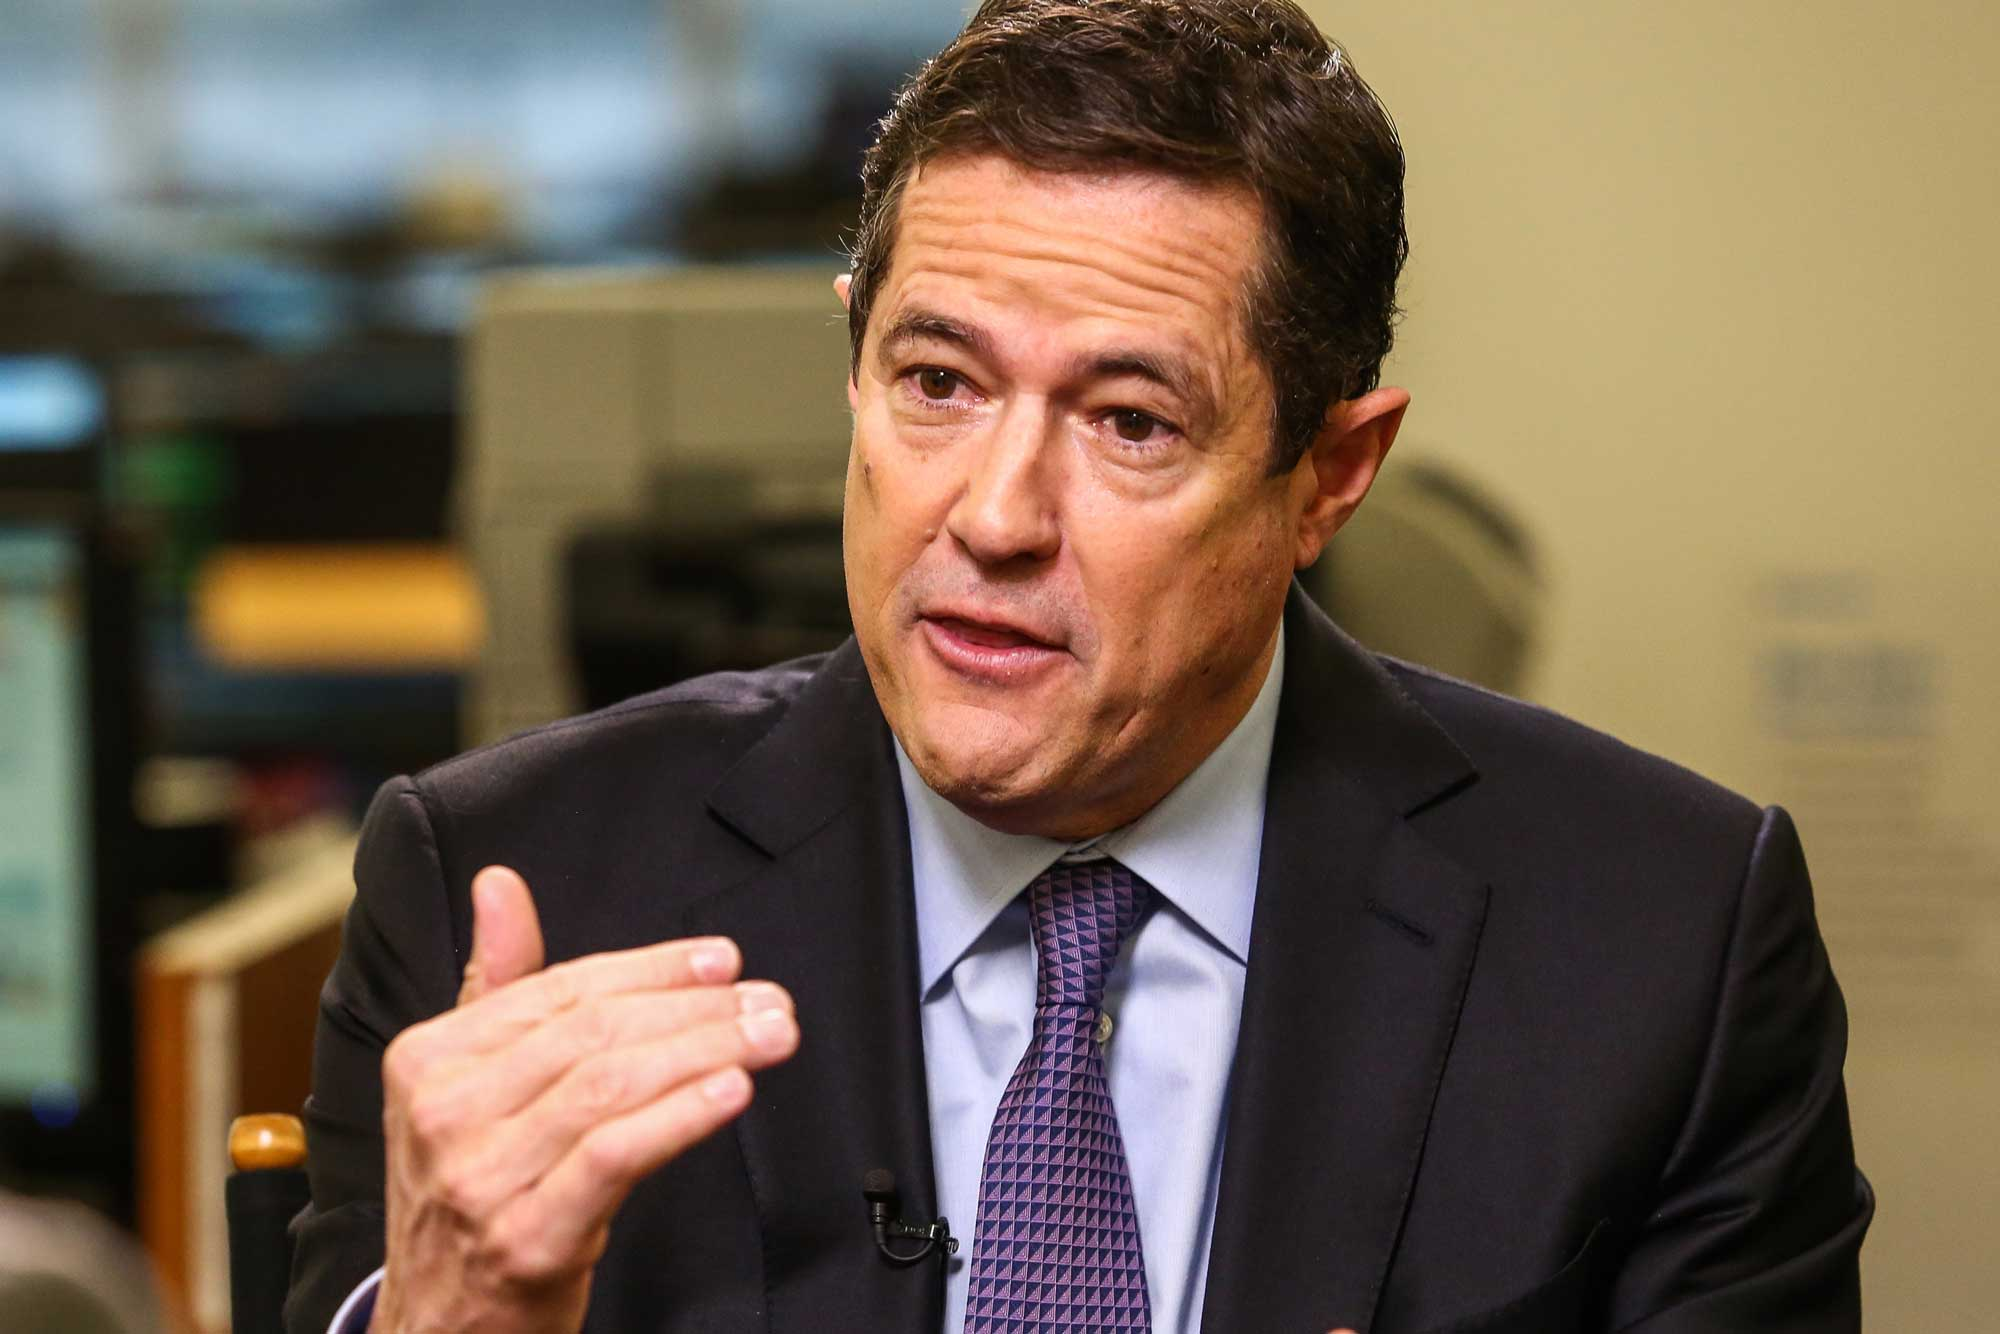 Barclays reveals its CEO is being probed over links to Jeffrey Epstein